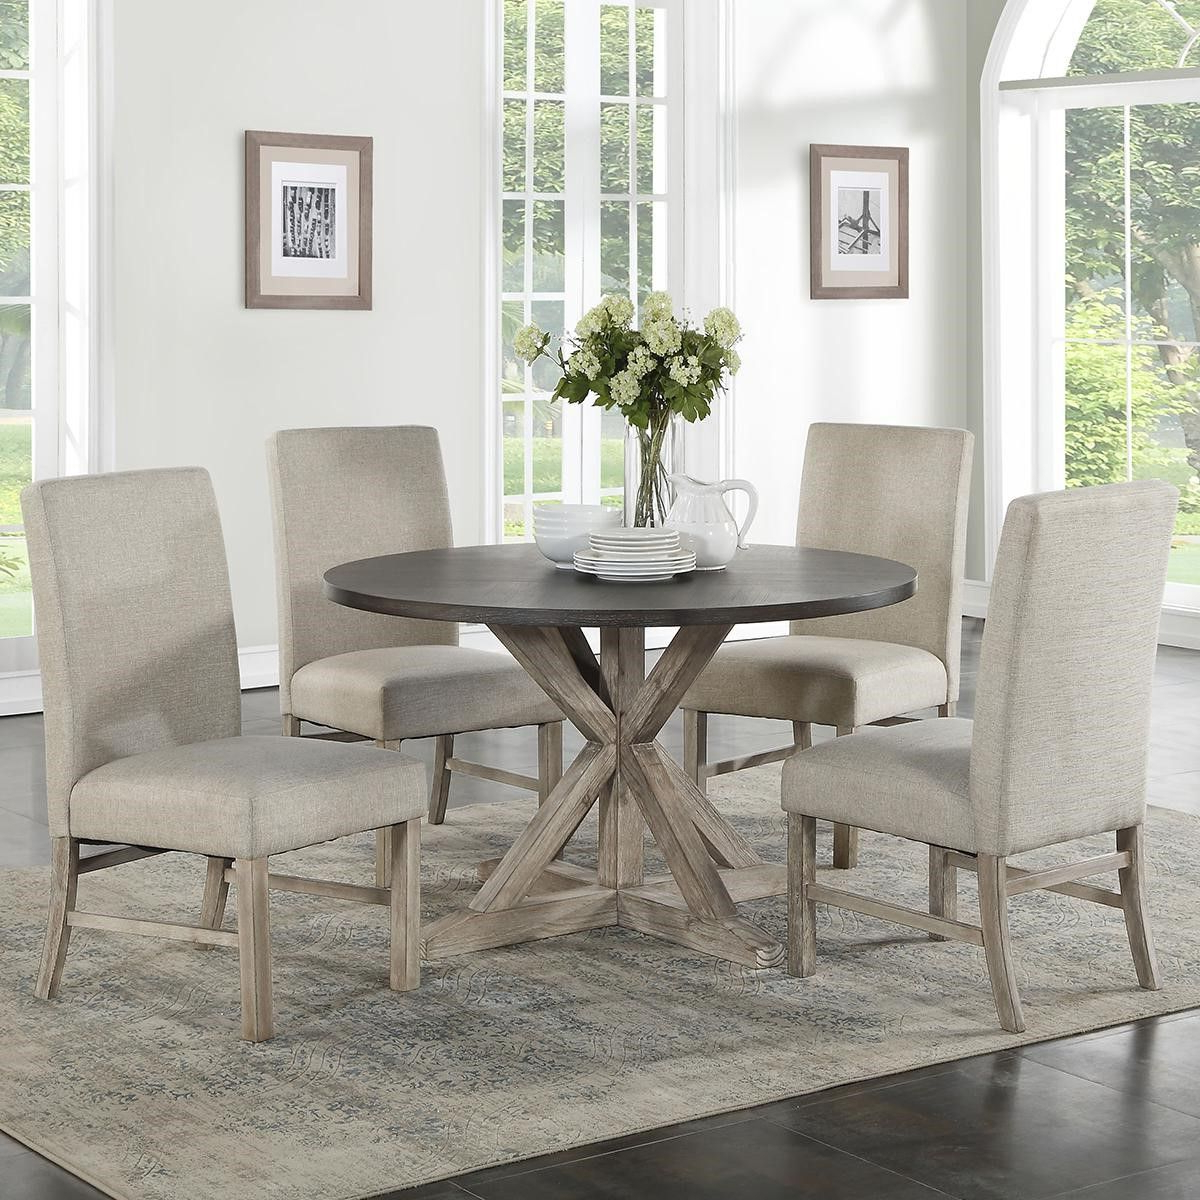 Travon 5 Piece Dining Sets Regarding Well Liked Langley Furniture Jefferson 5 Piece Dining Set In Reclaimed Pine And (View 6 of 25)